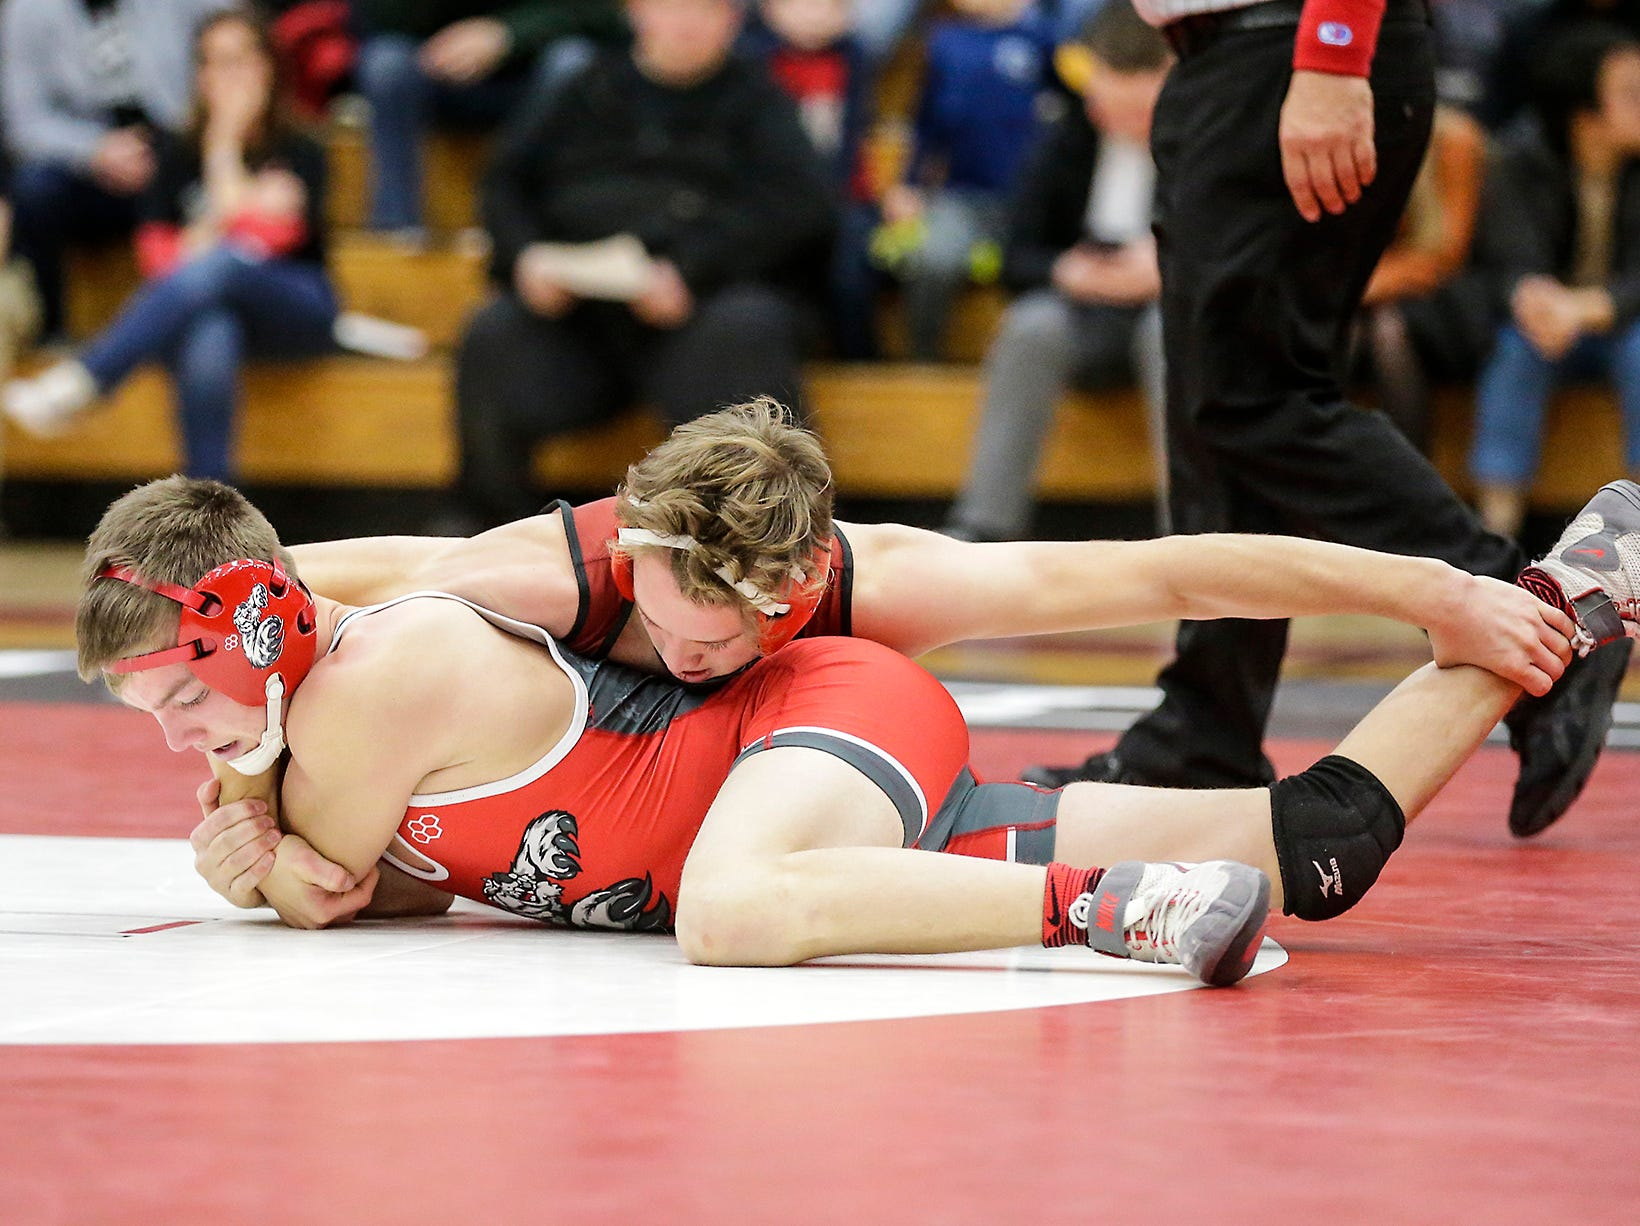 Fond du Lac High School wrestling's Tristan Lakey wrestles against Hortonville High School's Austin Wasmund in the 132 weight class during their meet Thrusday, December 6, 2018 in Fond du Lac, Wisconsin. Lakey won the match with a pin and Fond du Lac won the meet 51-18. Doug Raflik/USA TODAY NETWORK-Wisconsin